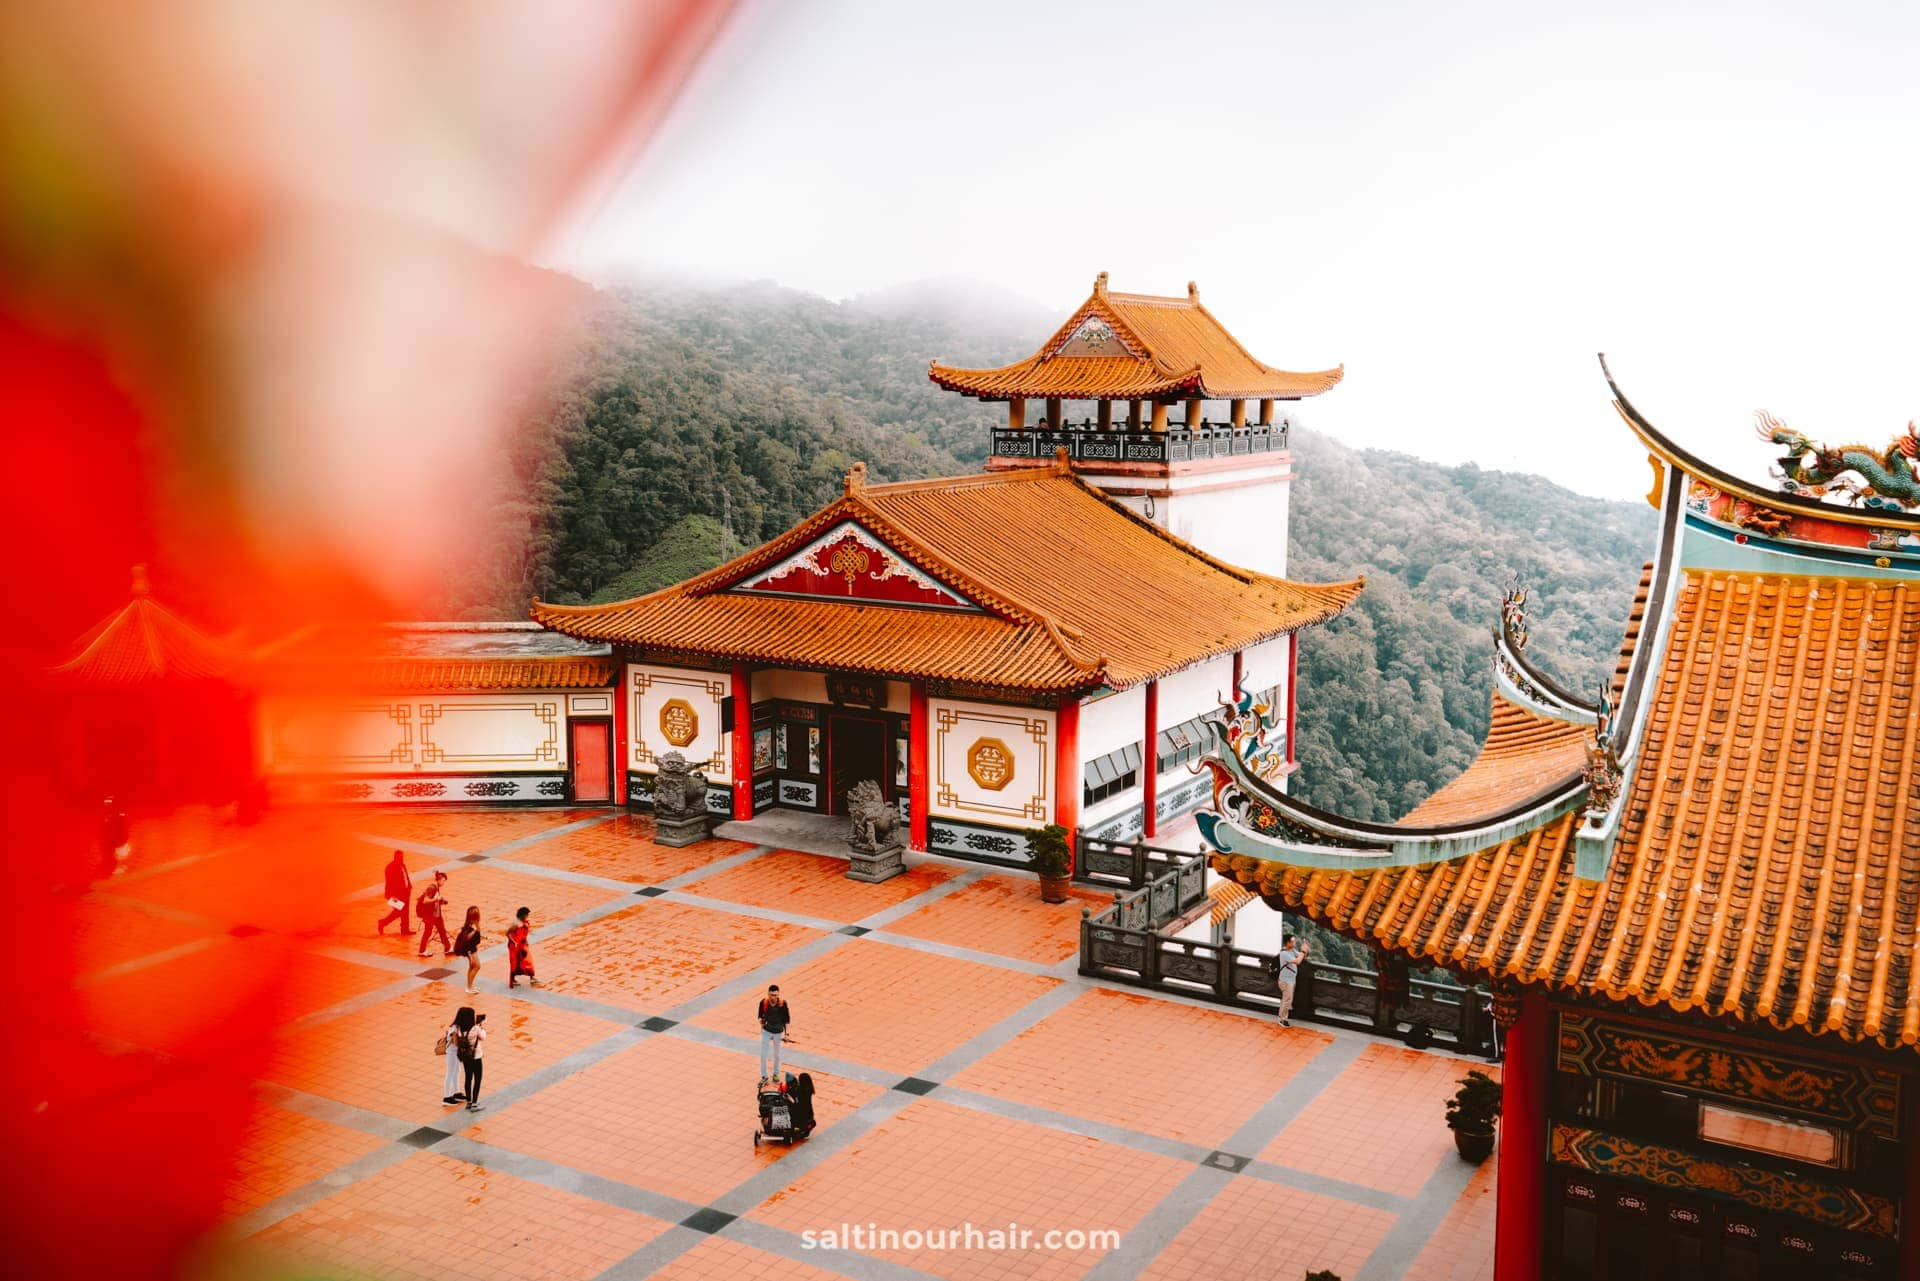 malaysia genting highlands Chin Swee Temple